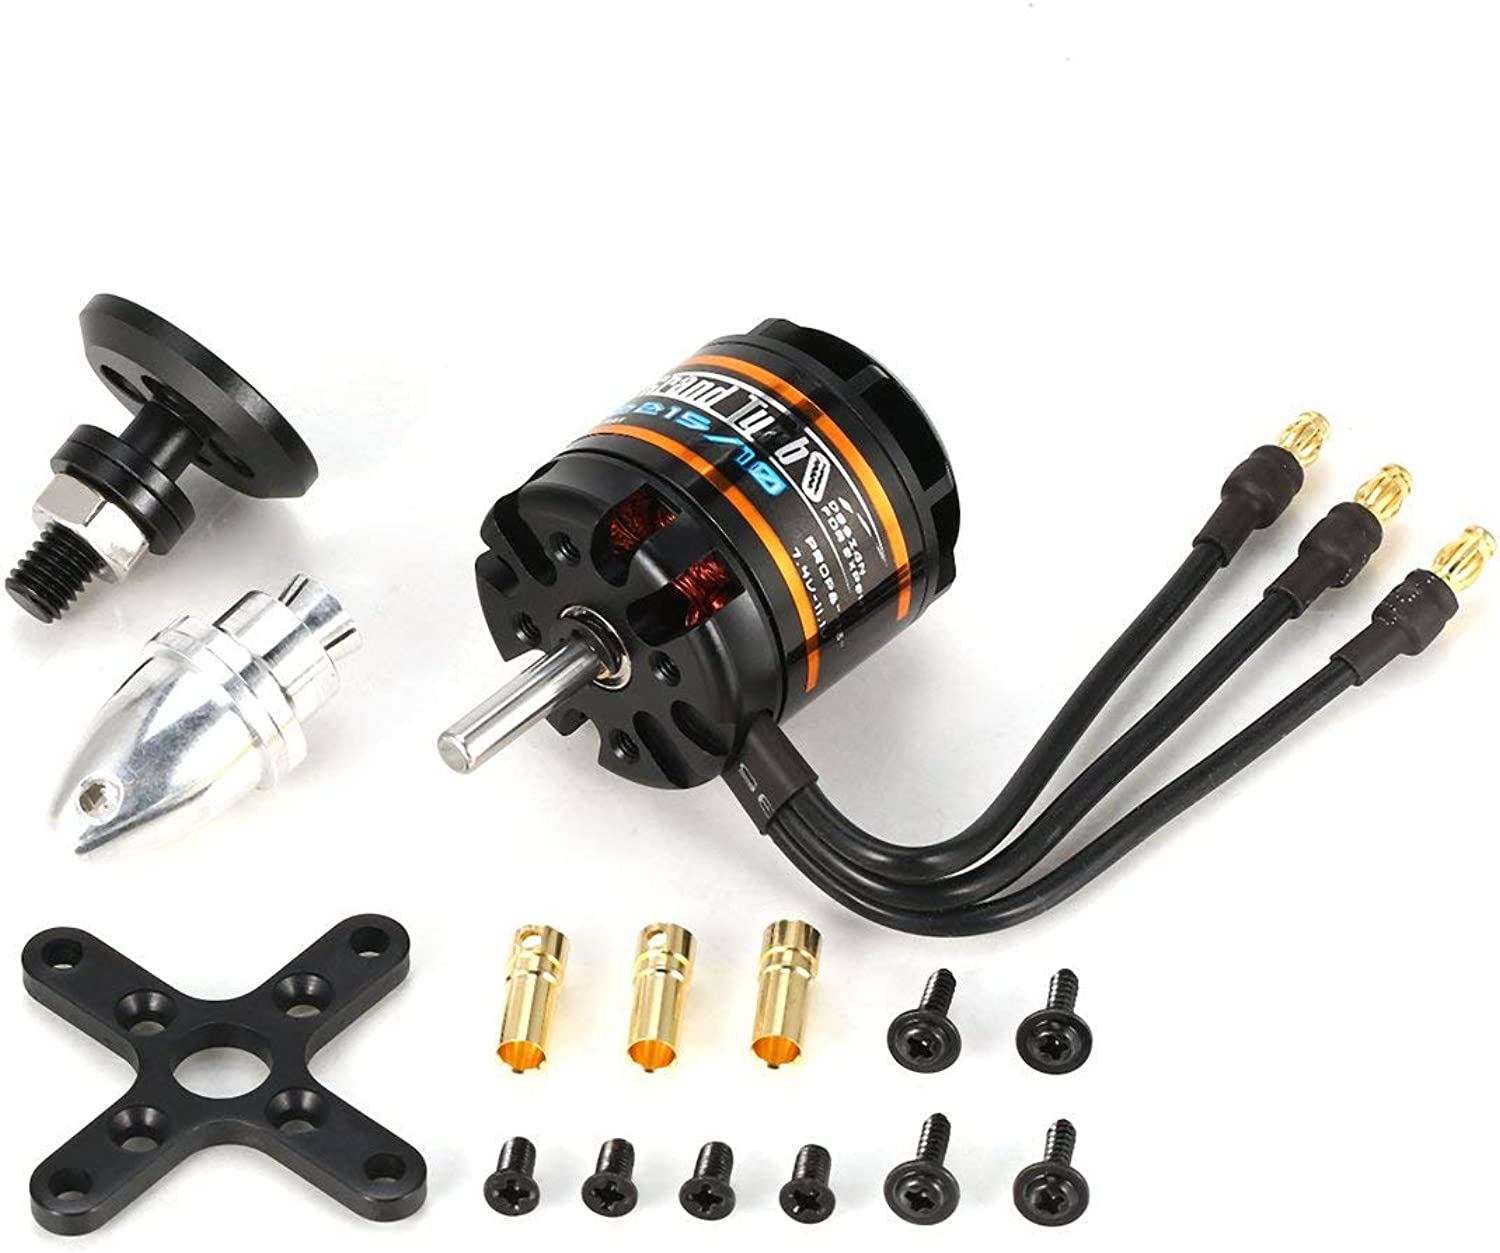 Tivolii for EMAX GT2215 10 1100KV 2-3S Lightweight Power Brushless Motor for RC Fixed Wing Airplane Drone Quadcopter Spare Parts